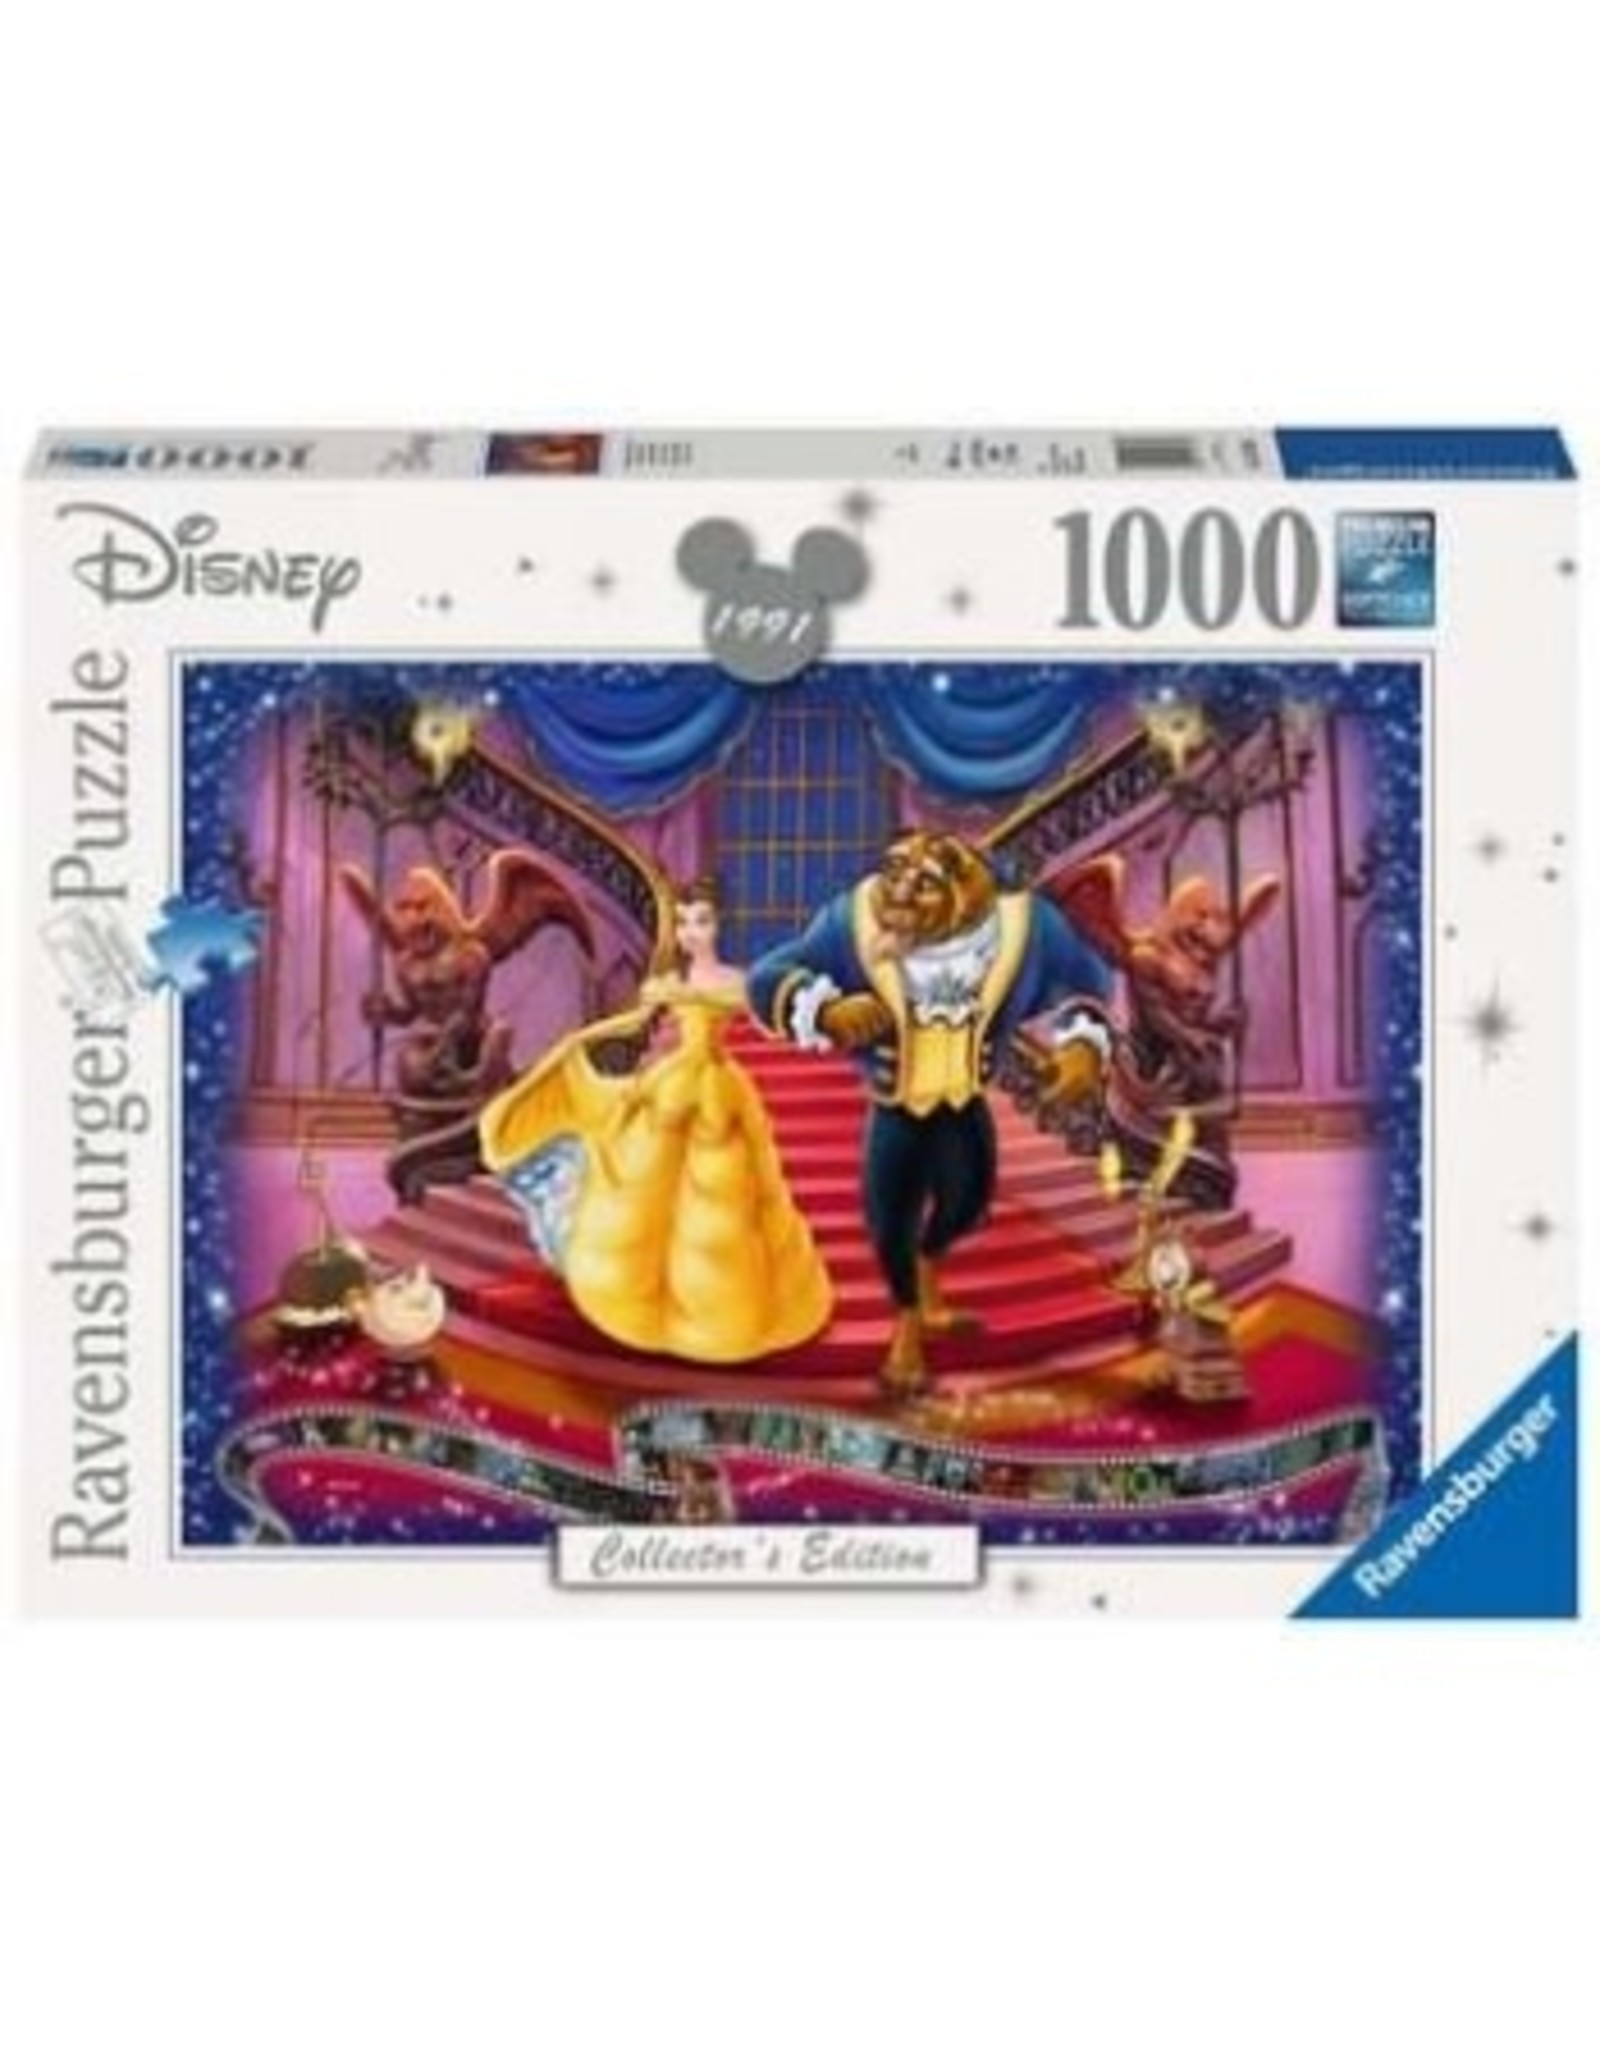 BEAUTY AND THE BEAST Puzzle 1000P - Collector's Edition